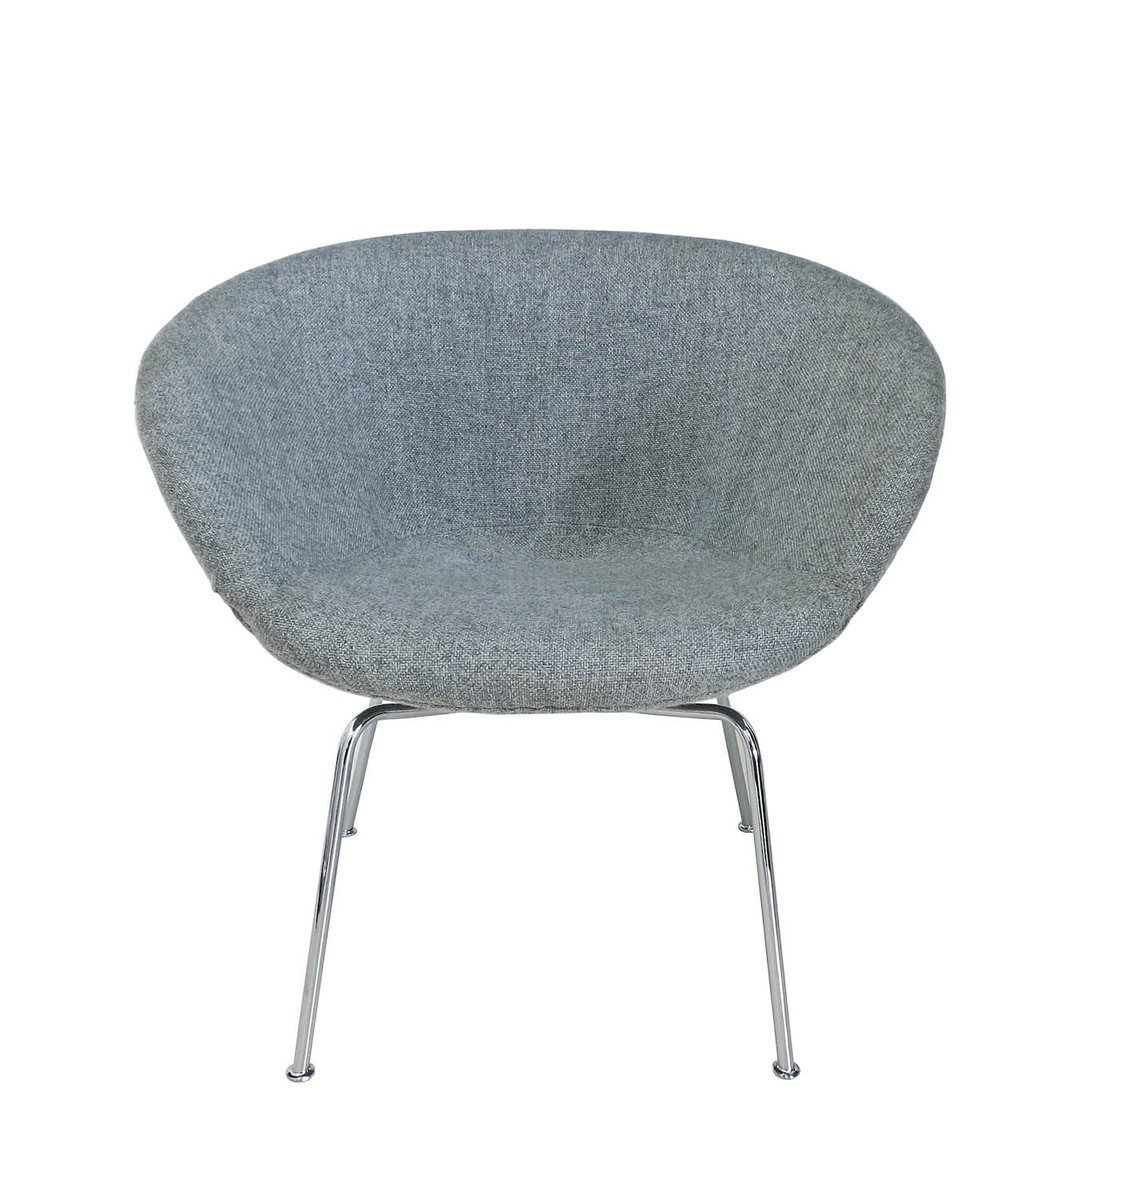 wheelchair with pot revolving chair spare parts online mid century danish by arne jacobsen for fritz